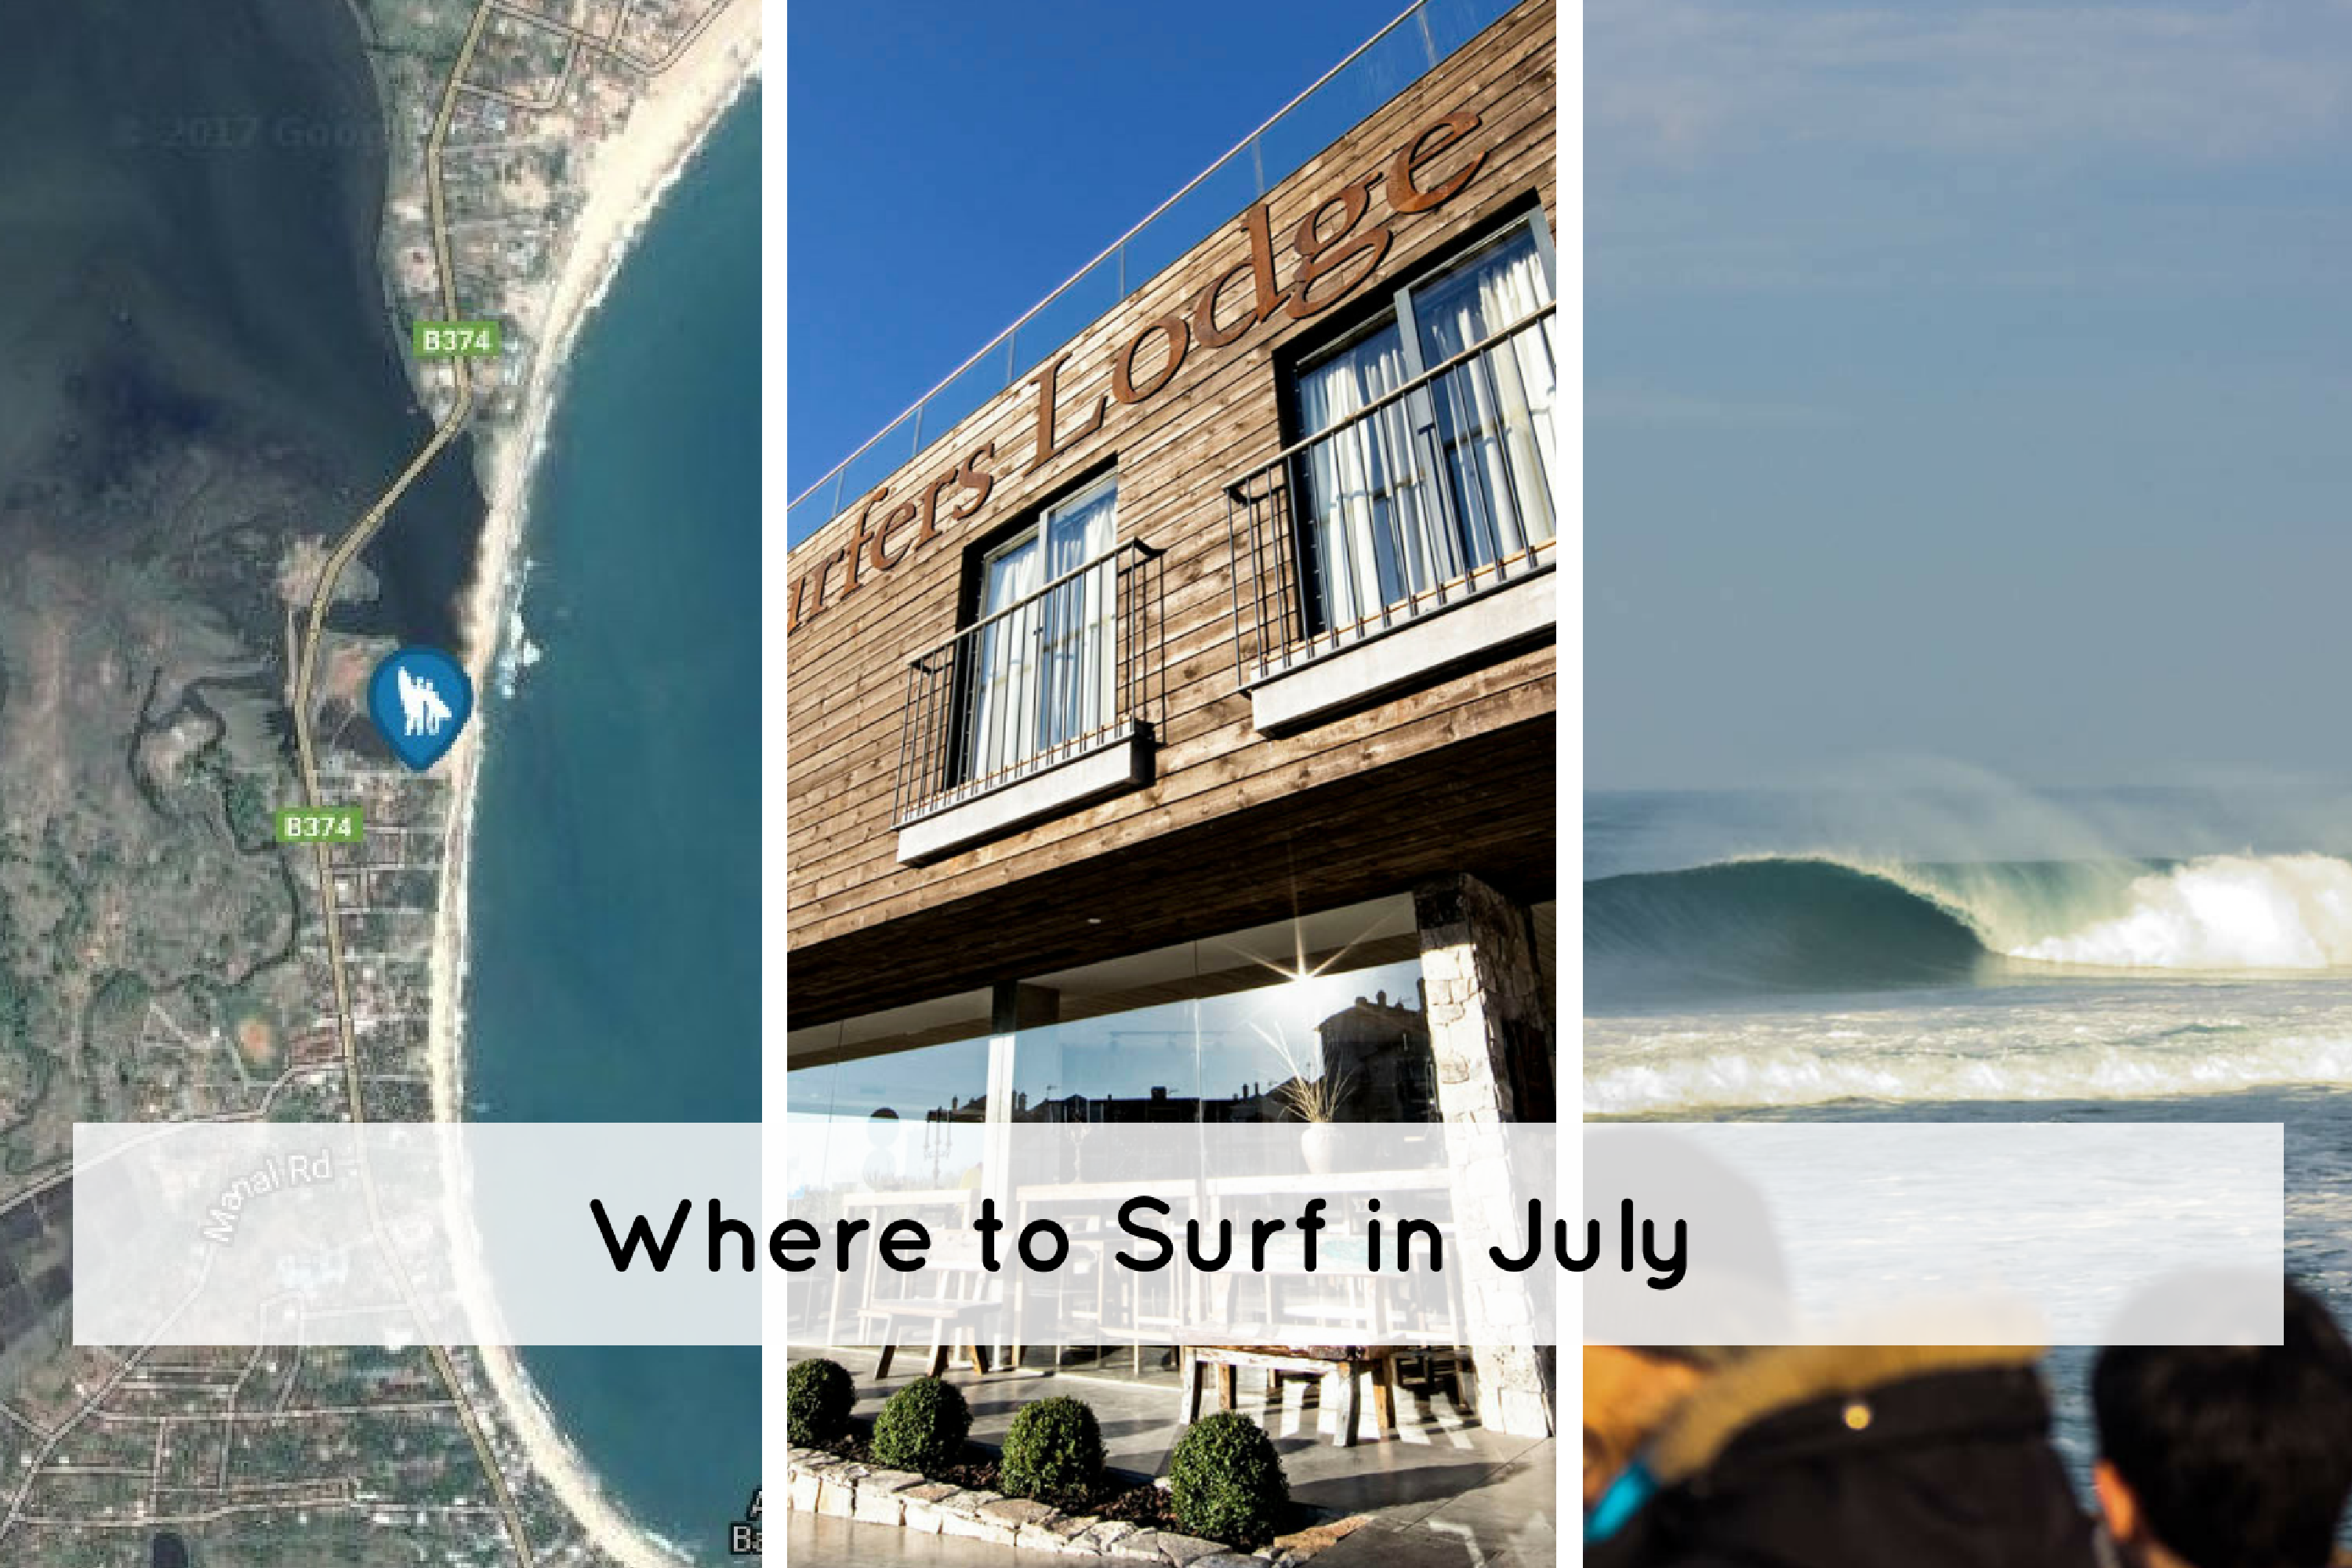 Where to Surf in July